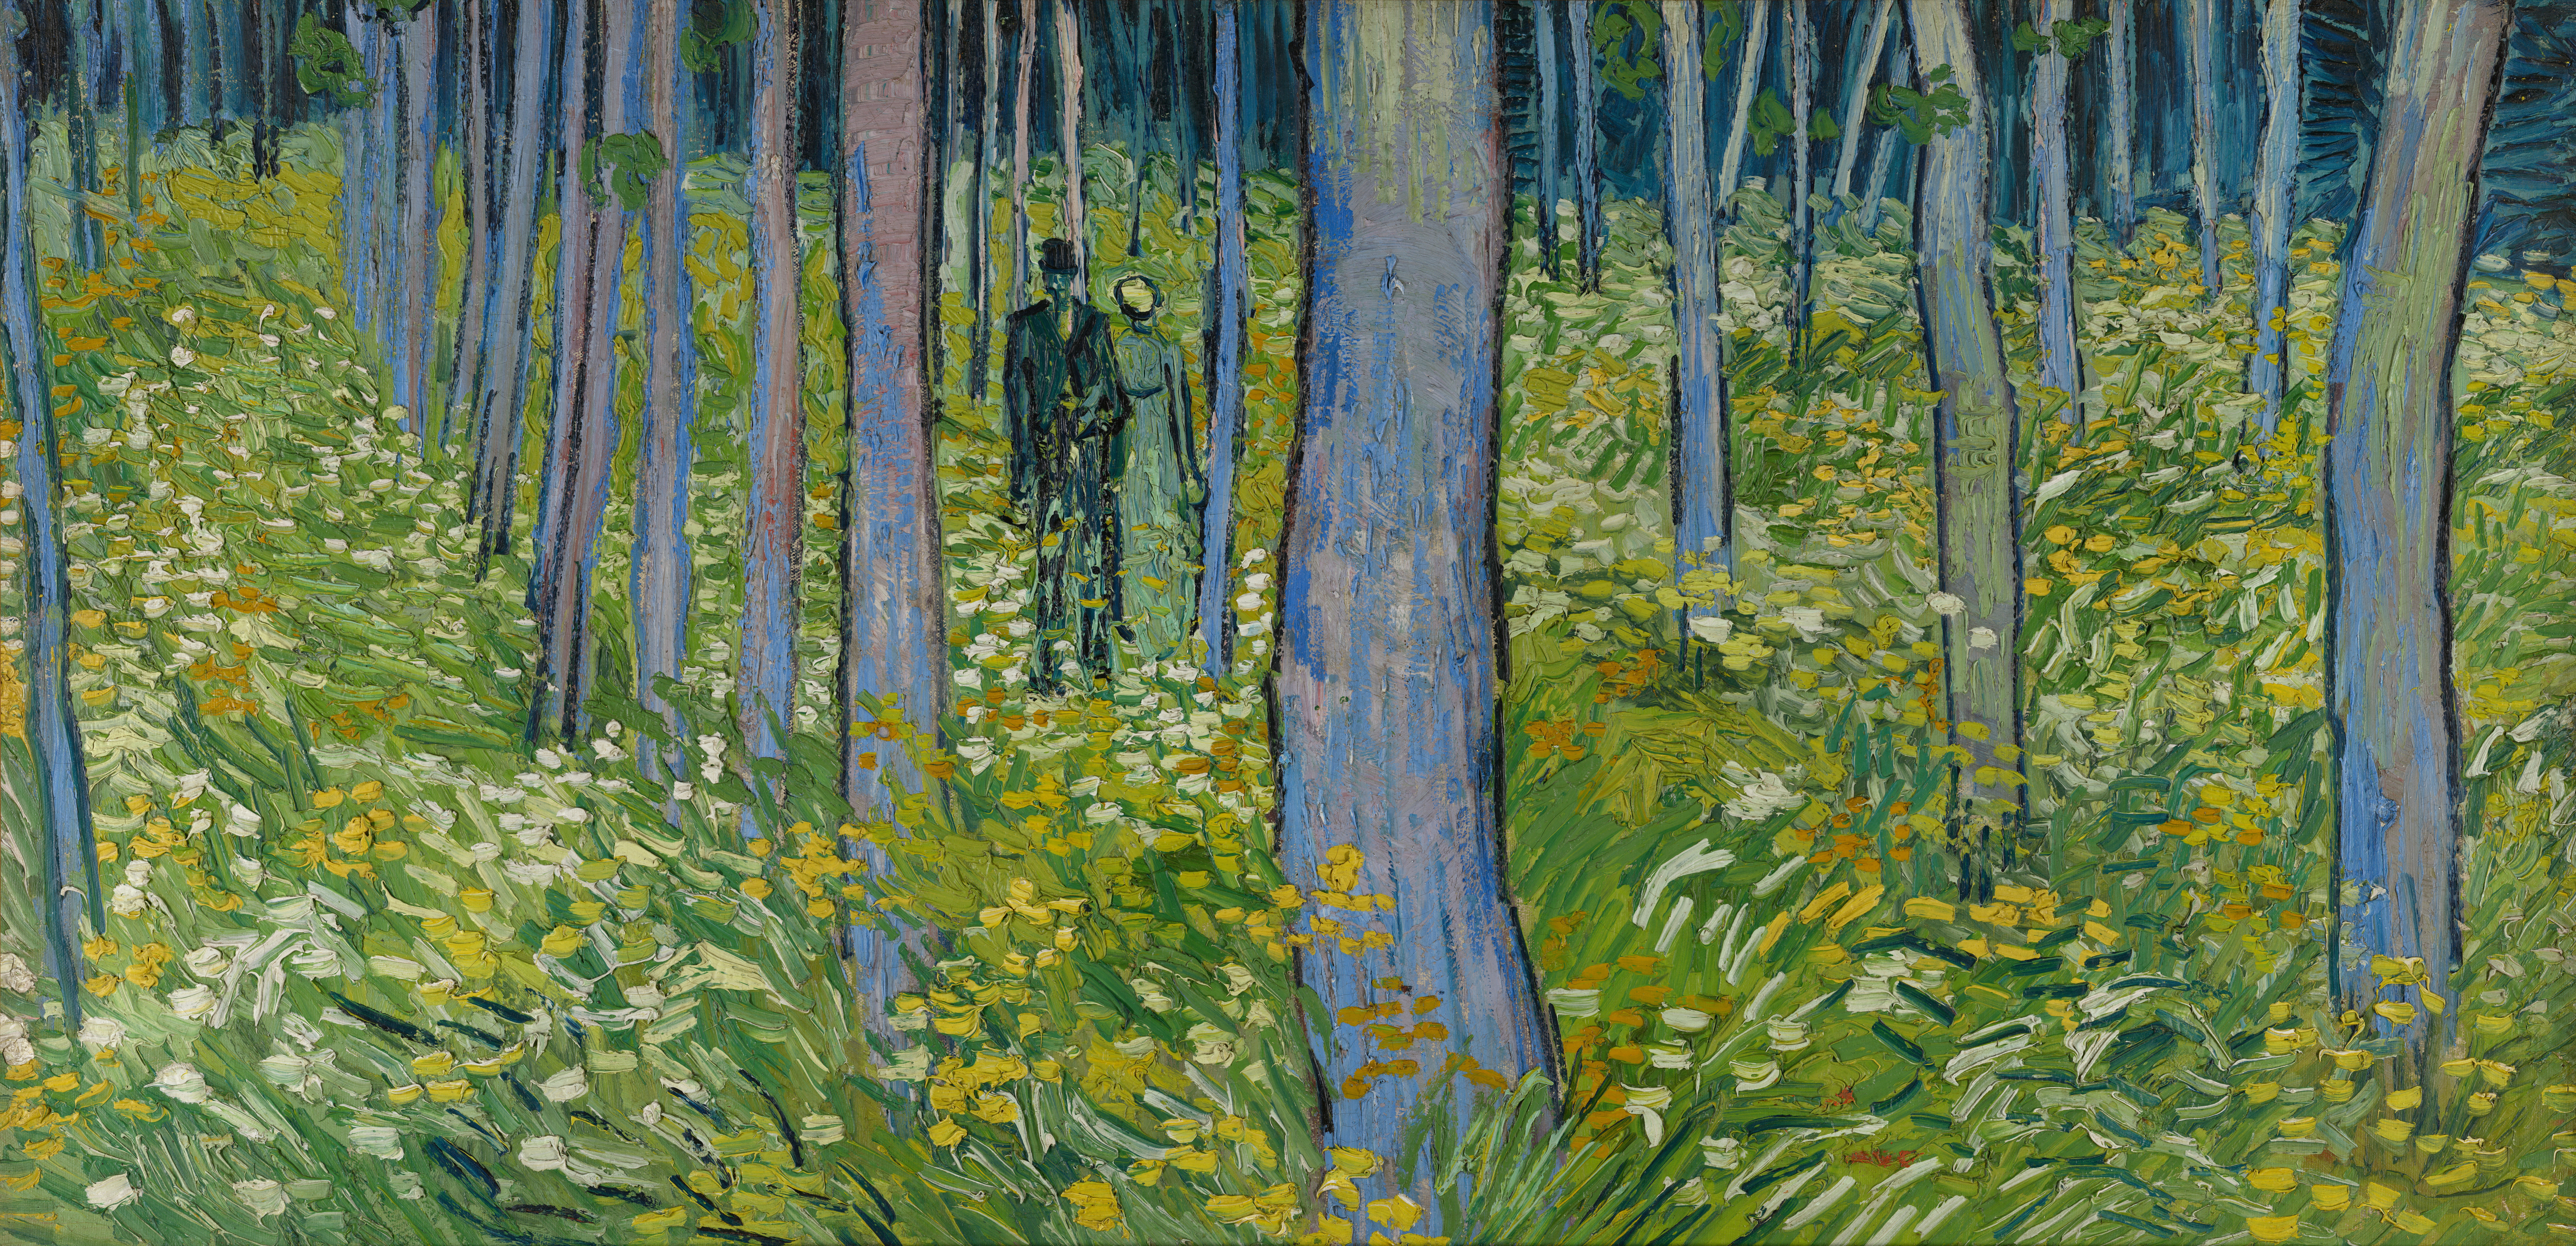 File:Vincent van Gogh - Undergrowth with